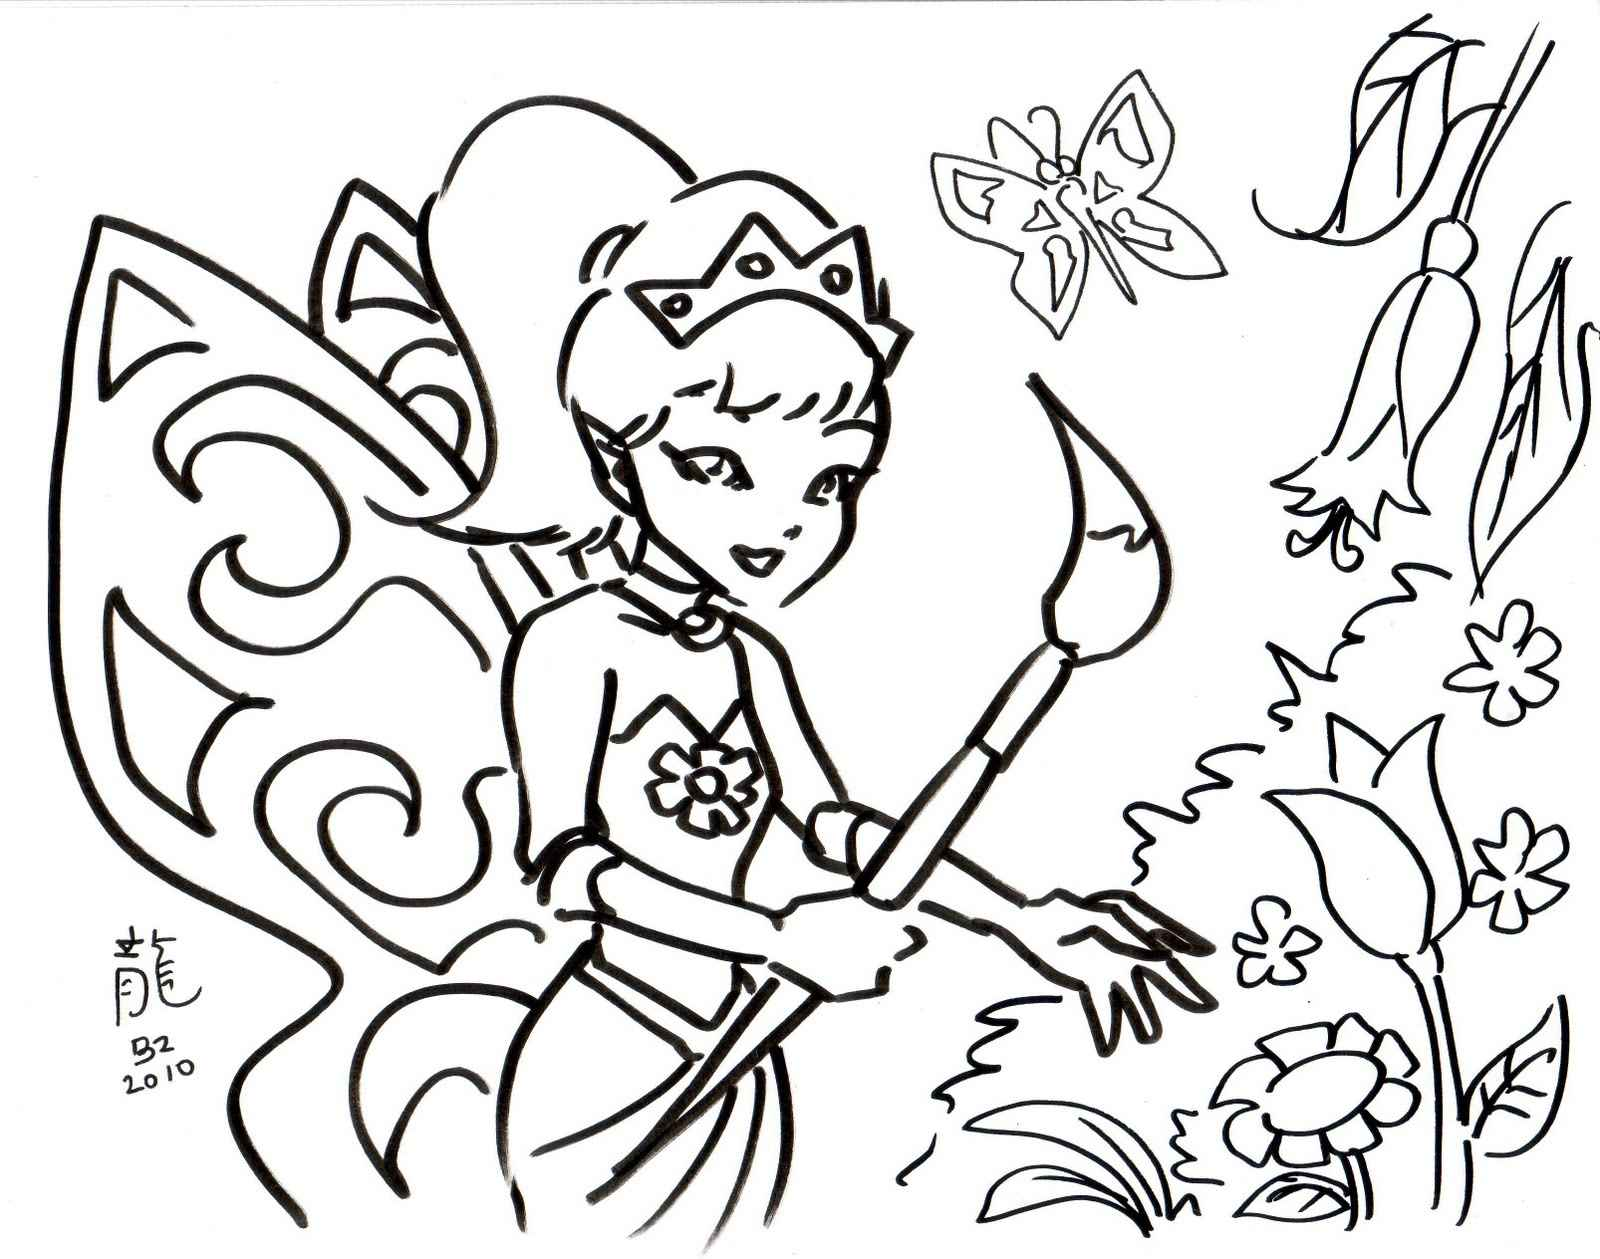 coloring pages for 3rd graders - advanced free 3rd grade coloring pages